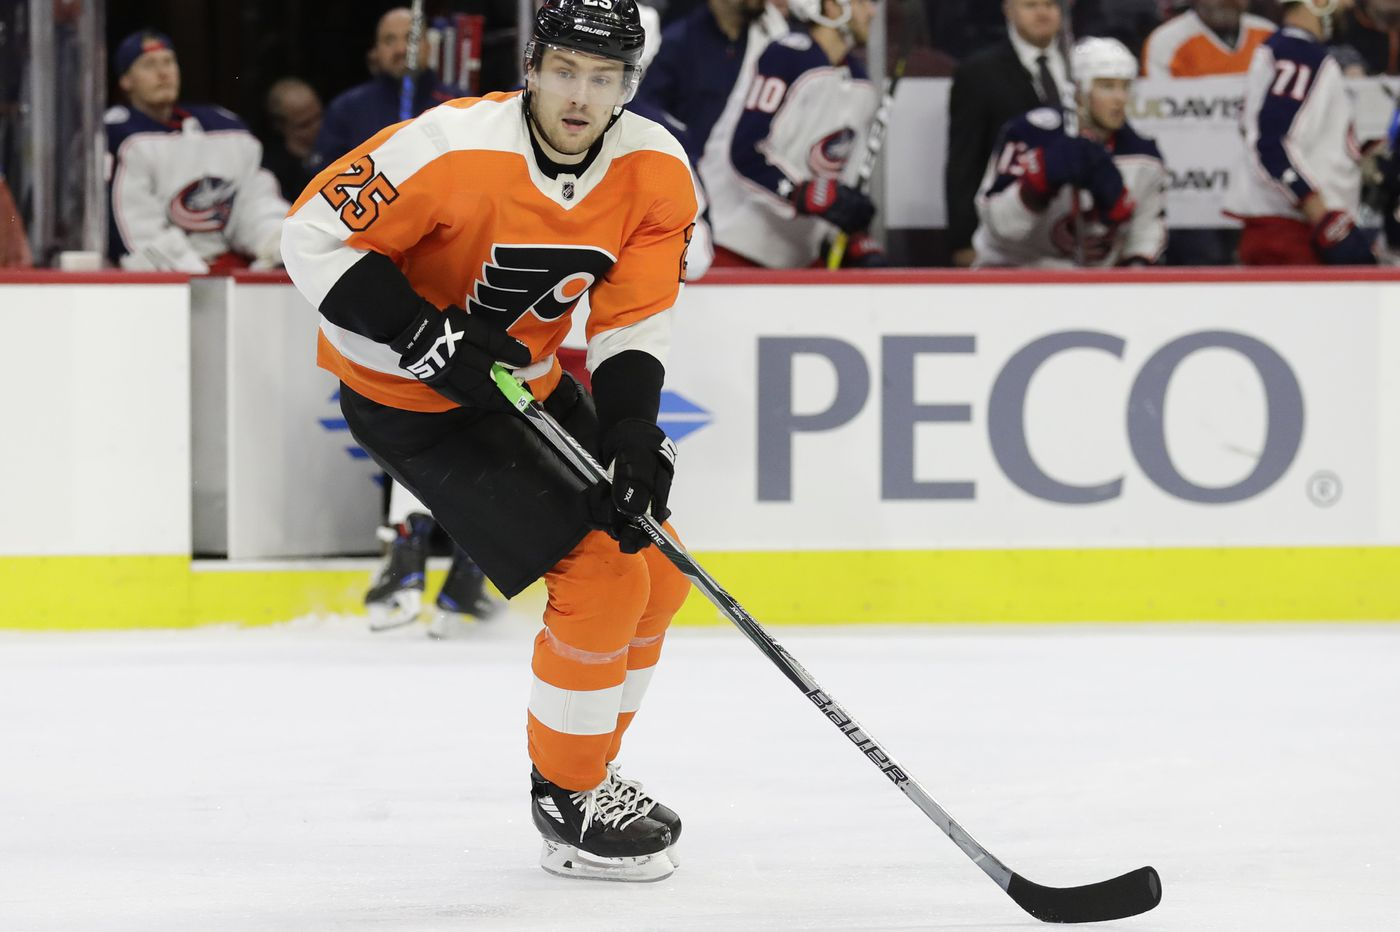 Flyers score six unanswered goals in comeback win over Buffalo Sabres; Claude Giroux collects 4 points